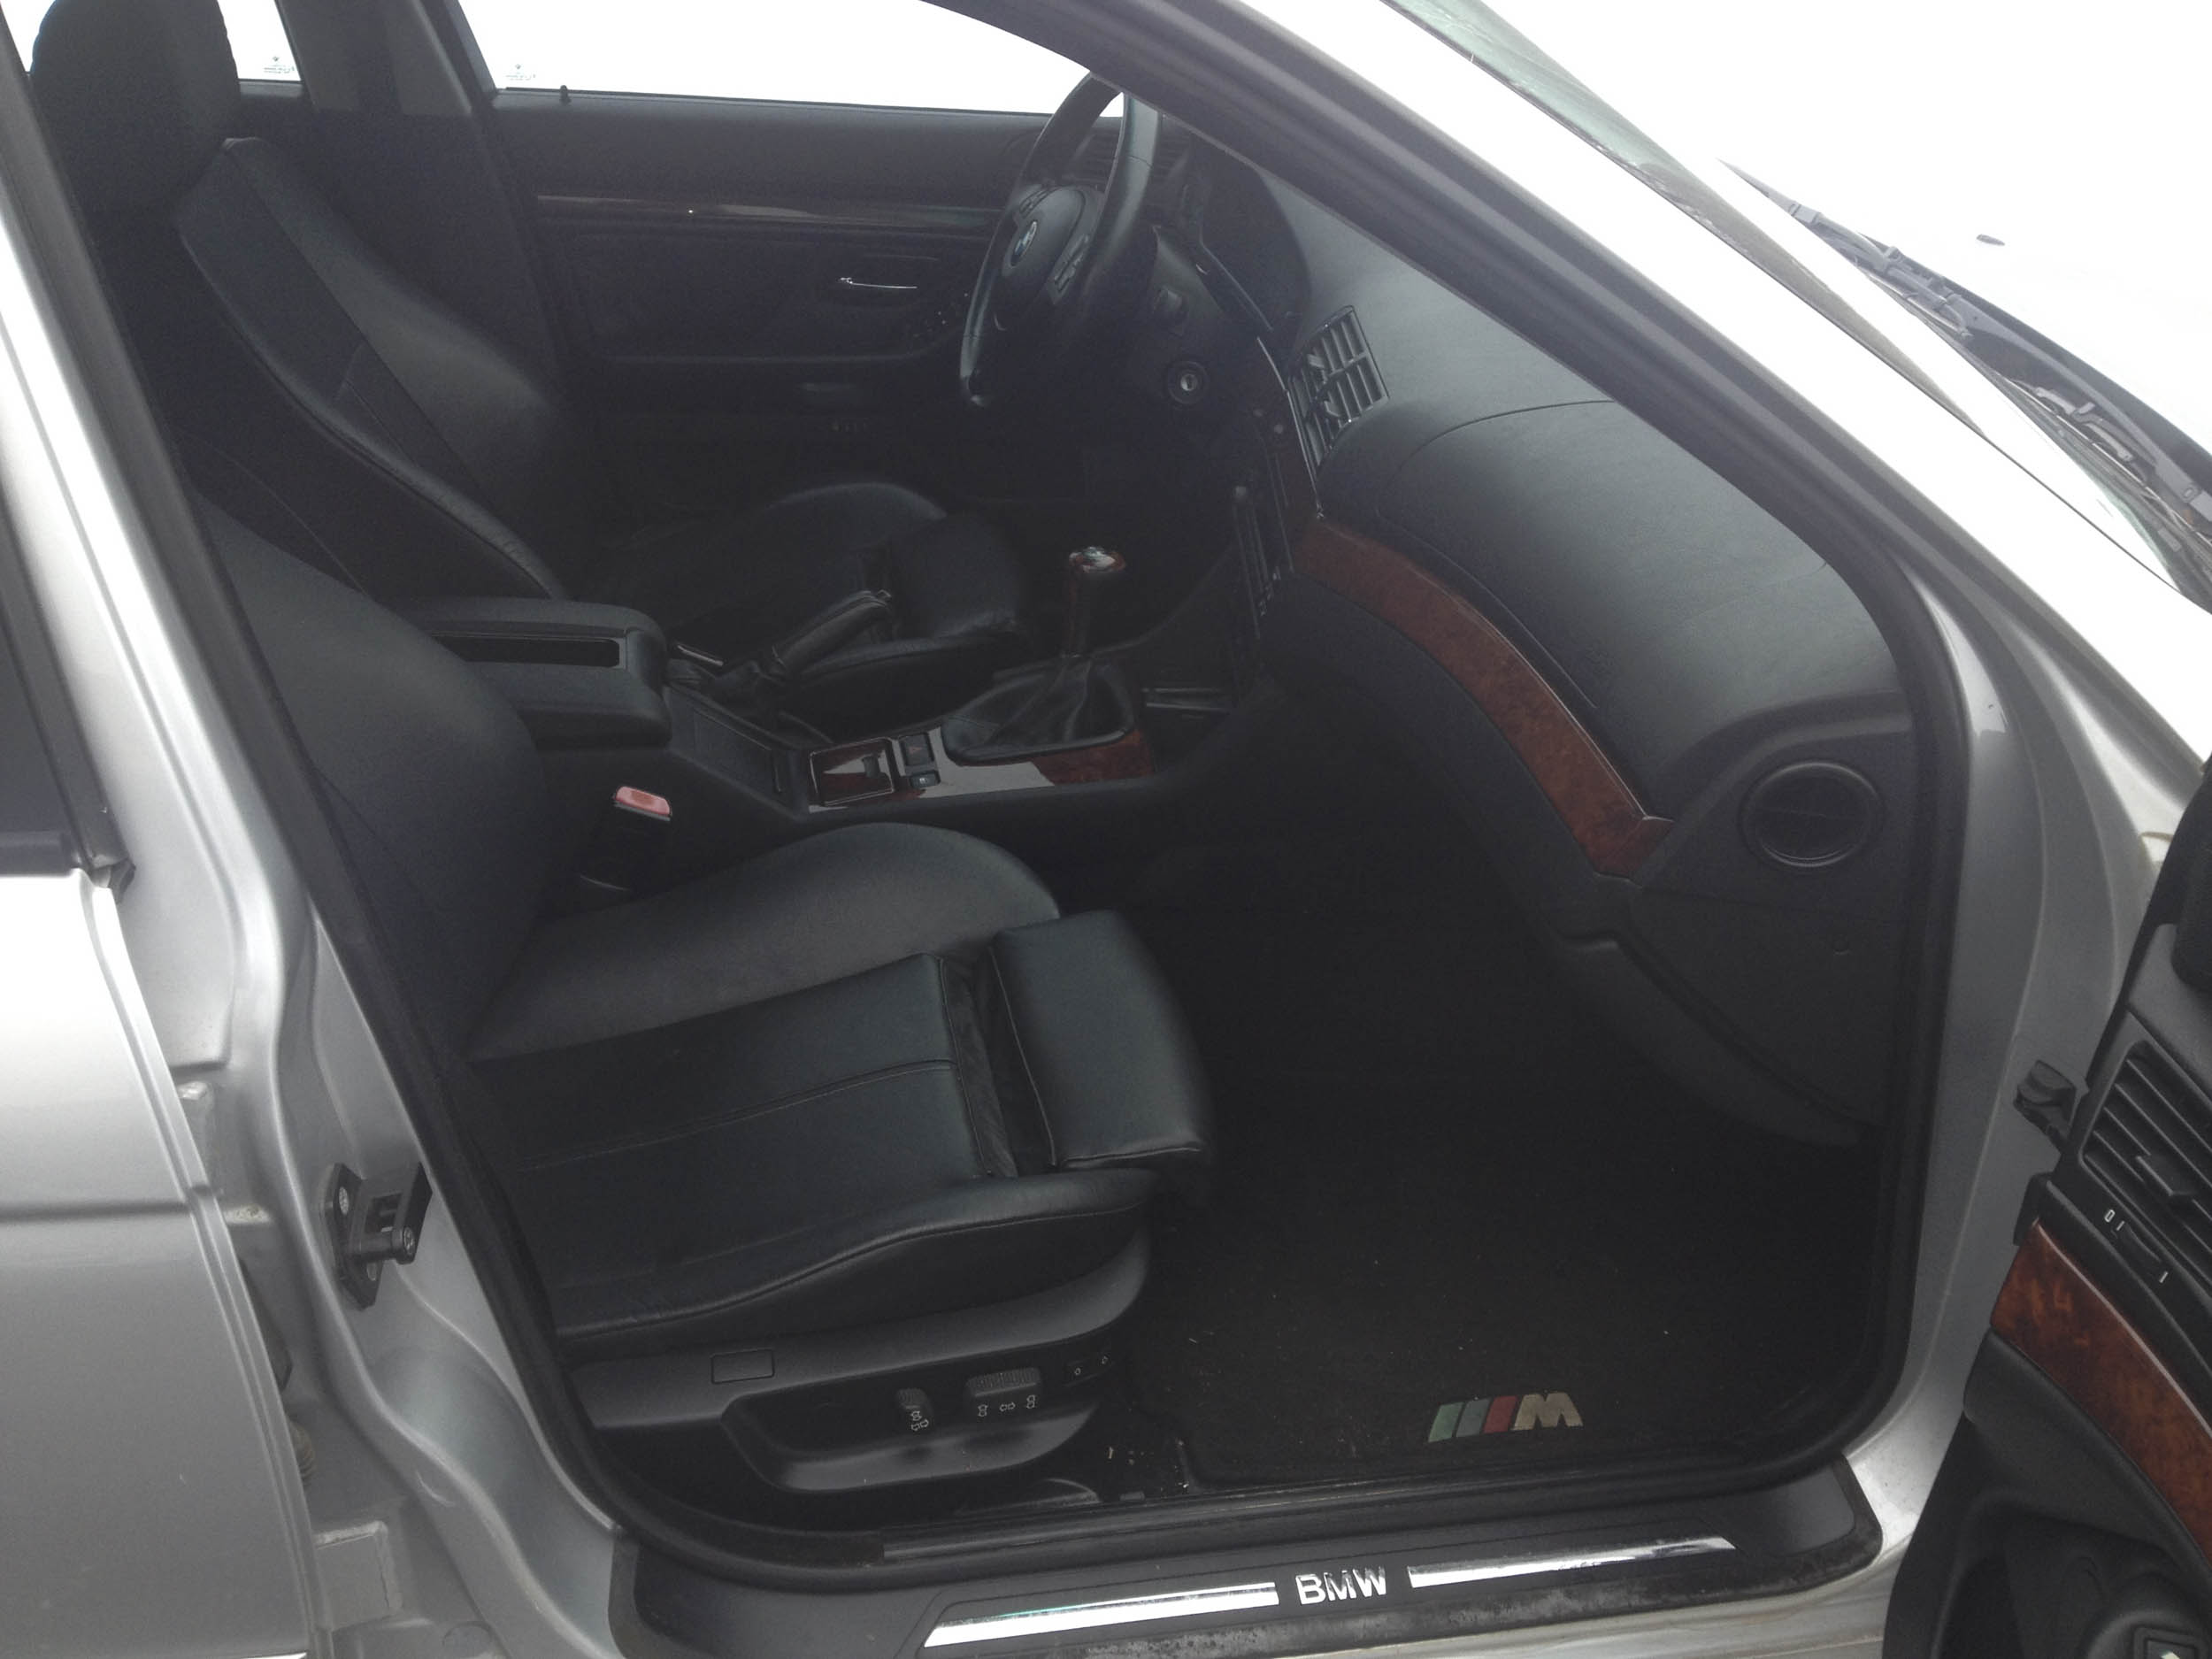 The black sport interior was in incredible shape for a car with 180,000 miles.